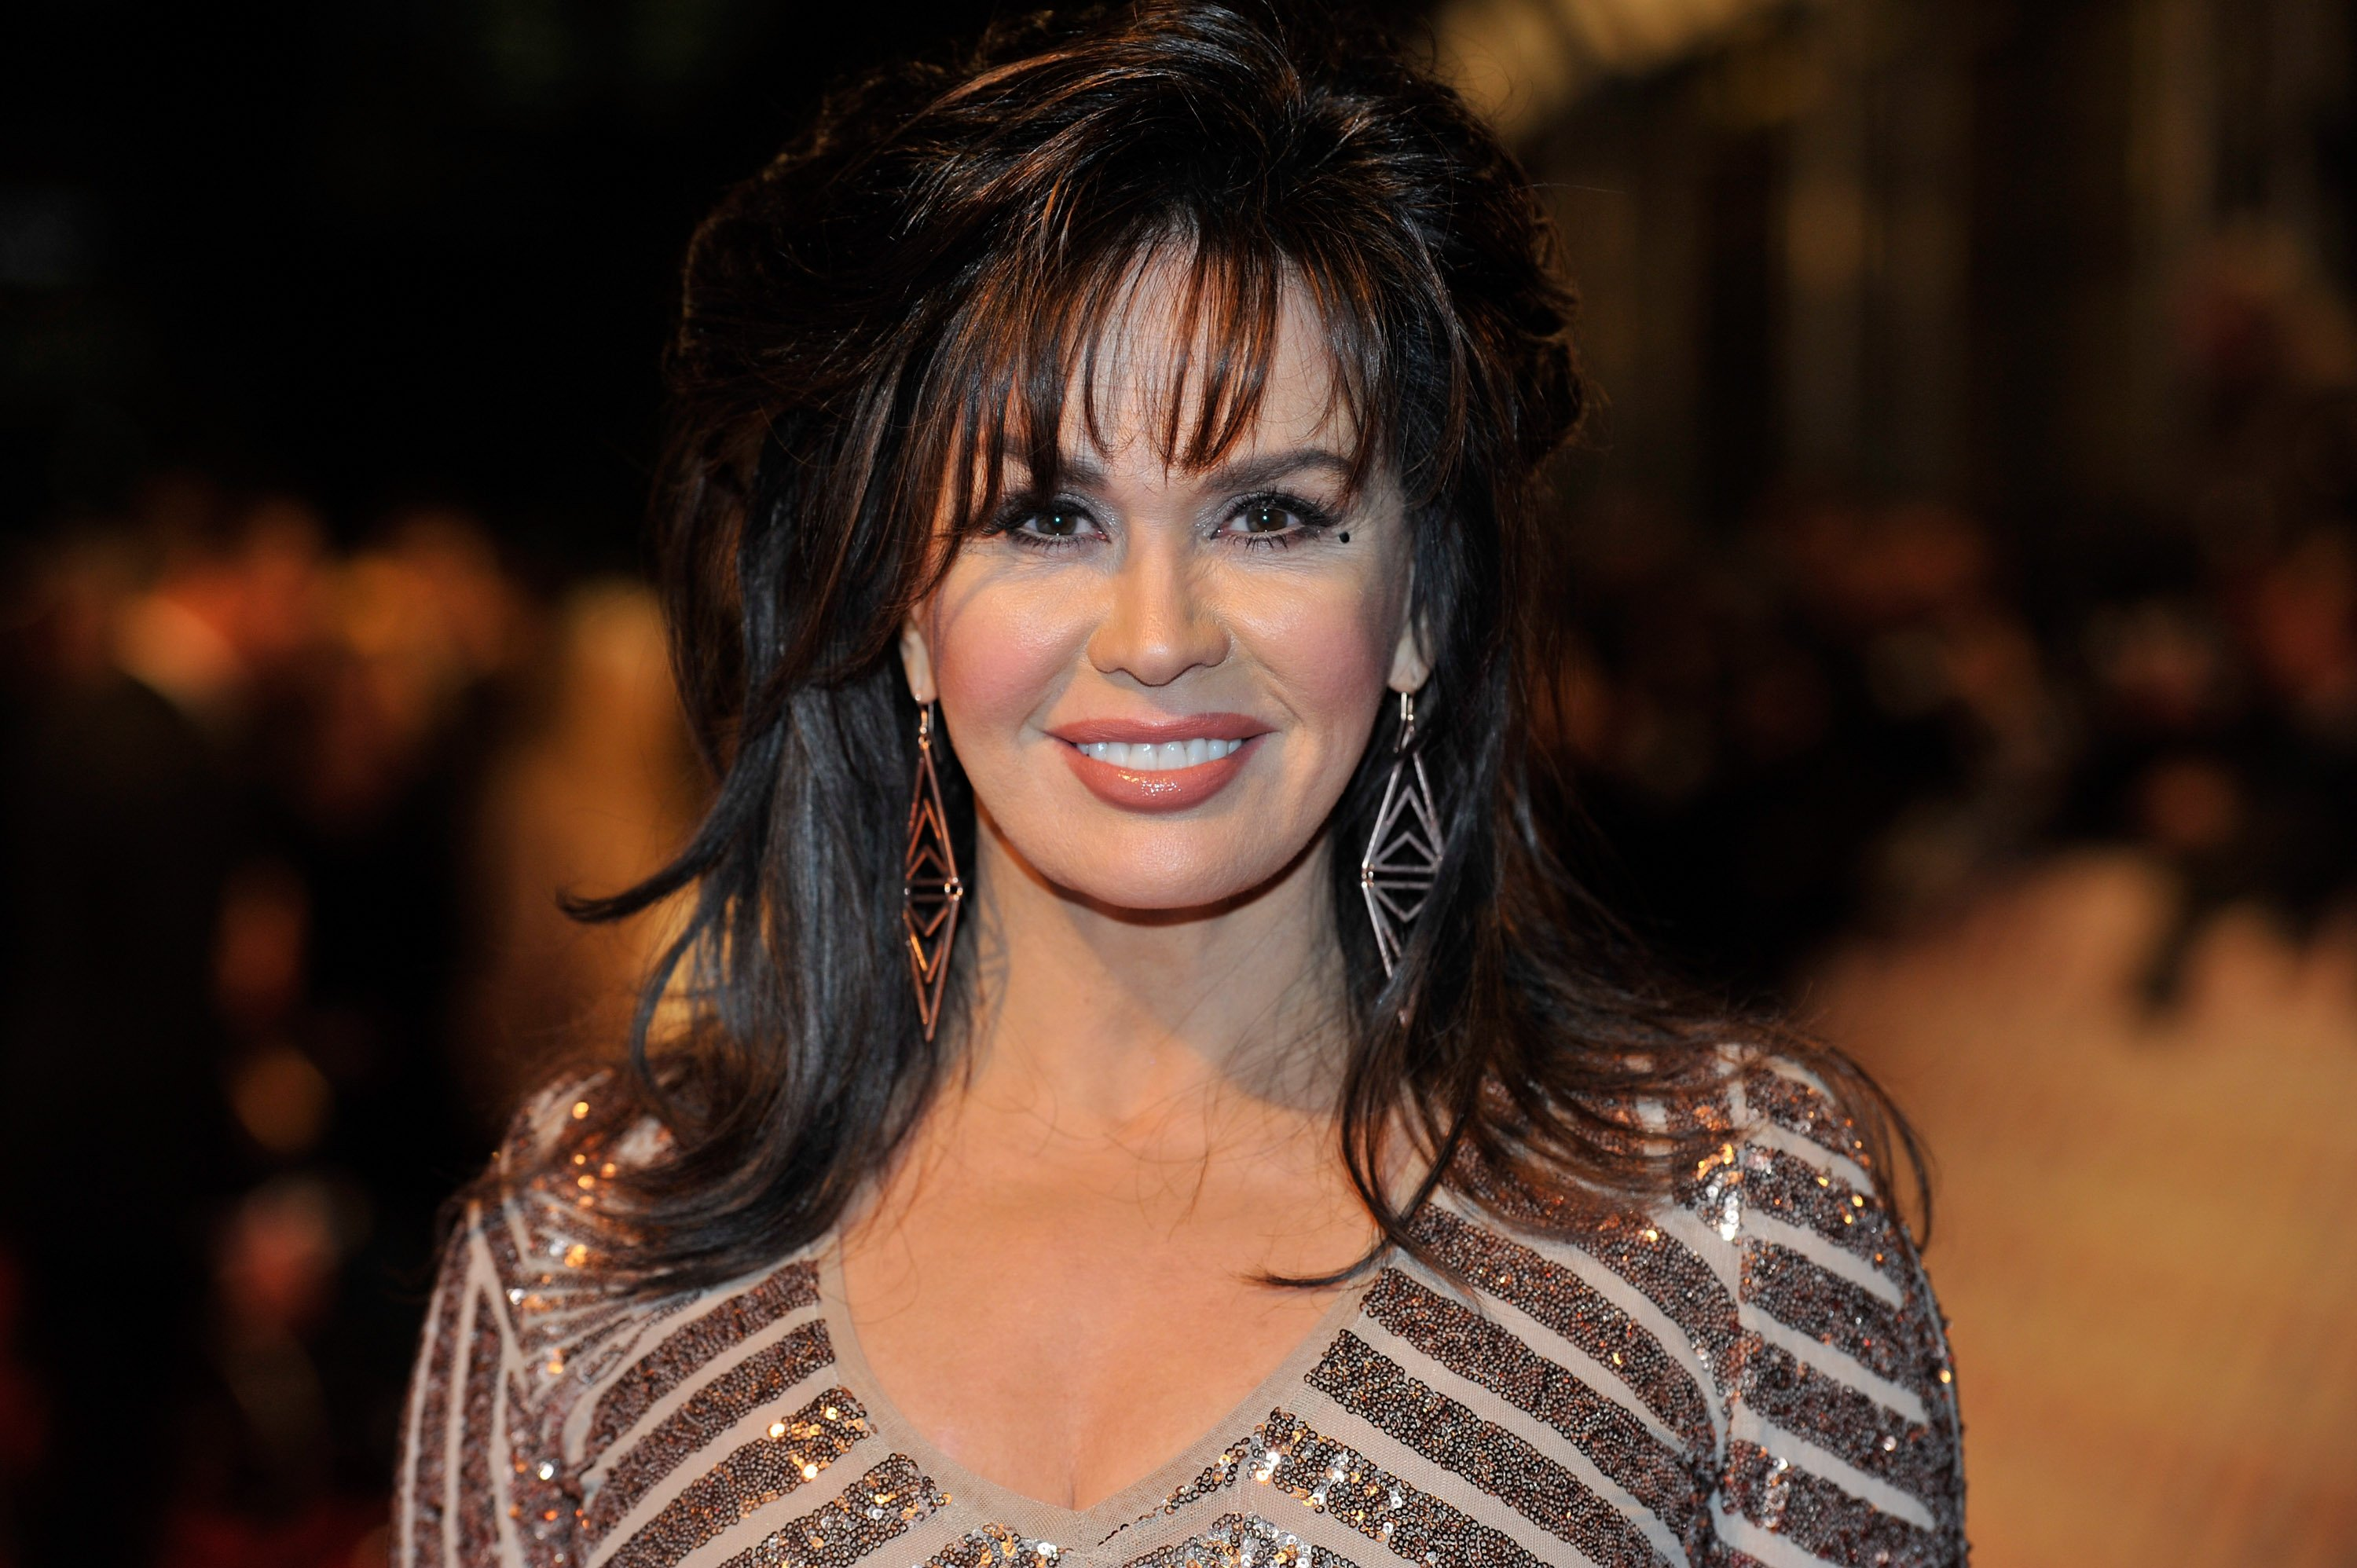 Marie Osmond pictured at the National Television Awards at 02 Arena in London, England in 2013. | Photo: Getty Images